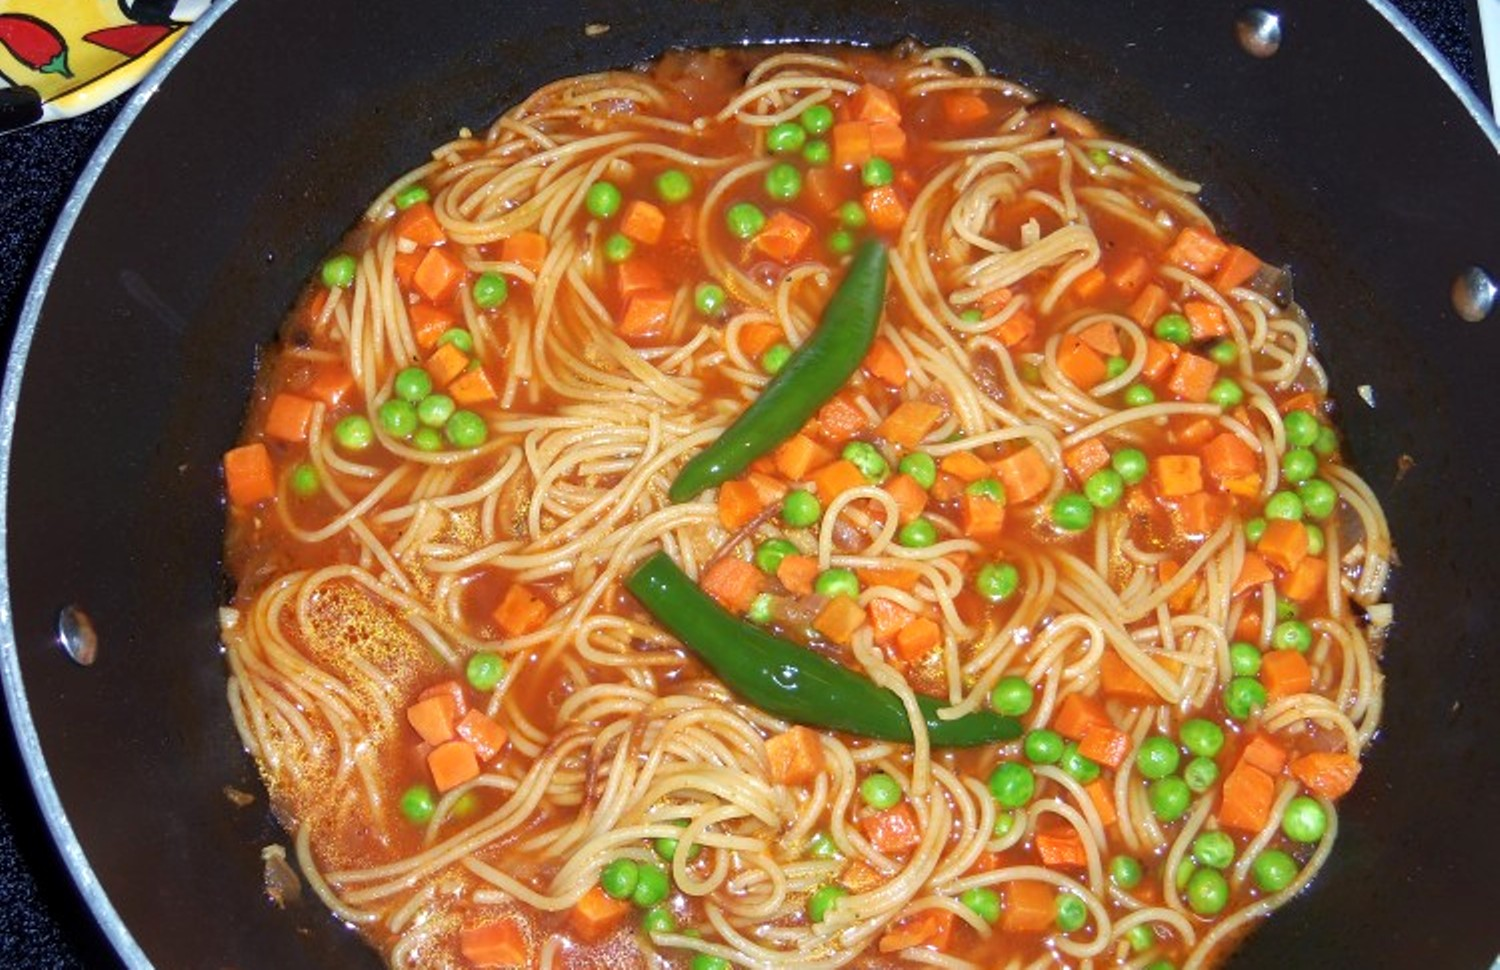 Sopa De Fideo Mexican Noodle Soup With Peas And Carotts